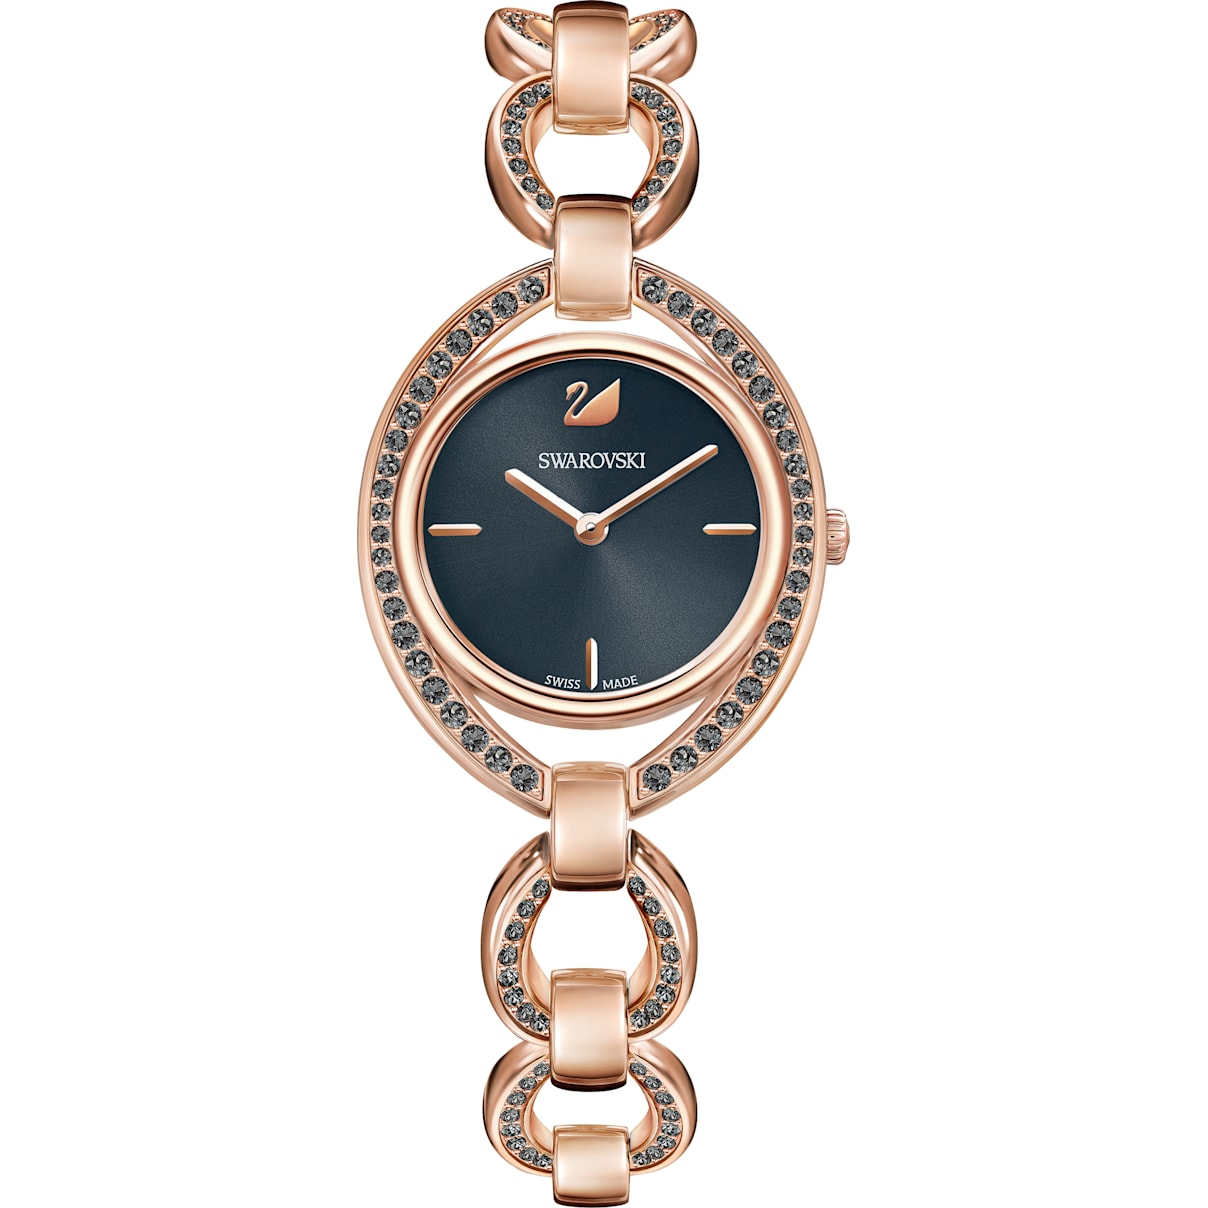 Swarovski Stella Watch, Metal bracelet, Dark gray, Rose-gold tone PVD